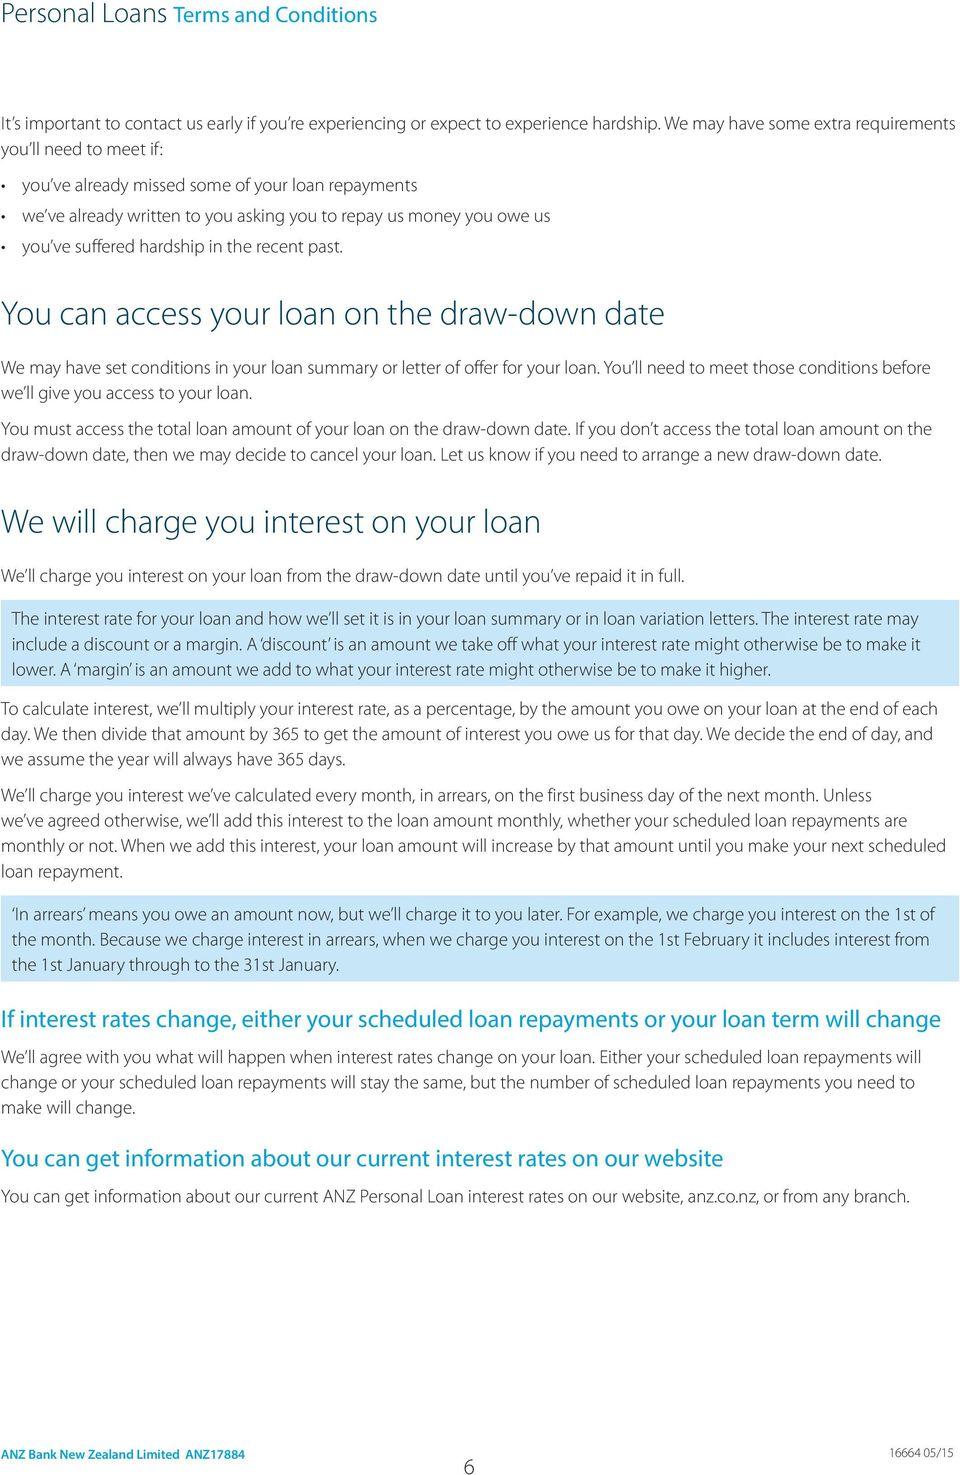 hardship in the recent past. You can access your loan on the draw-down date We may have set conditions in your loan summary or letter of offer for your loan.